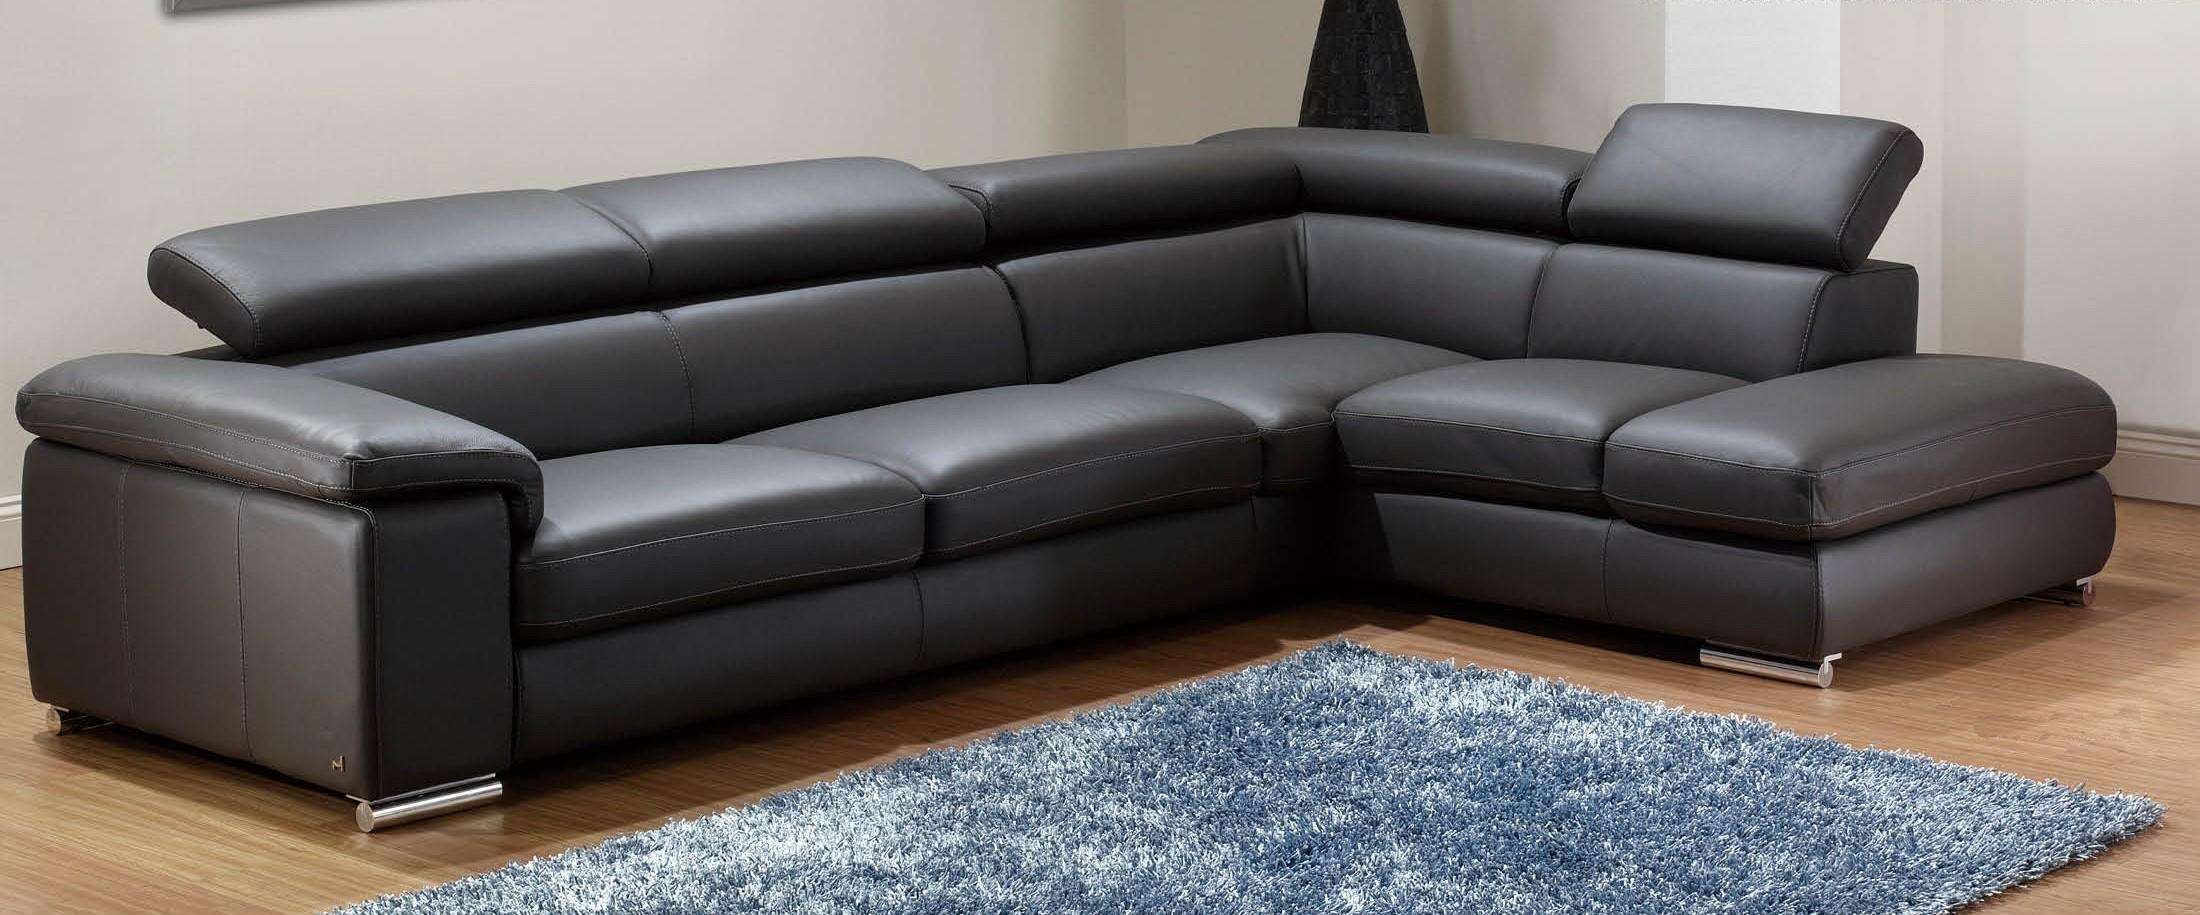 Furniture: Leather Sectional Living Room Furniture And Tufted Inside Tufted Sectional With Chaise (Image 9 of 20)